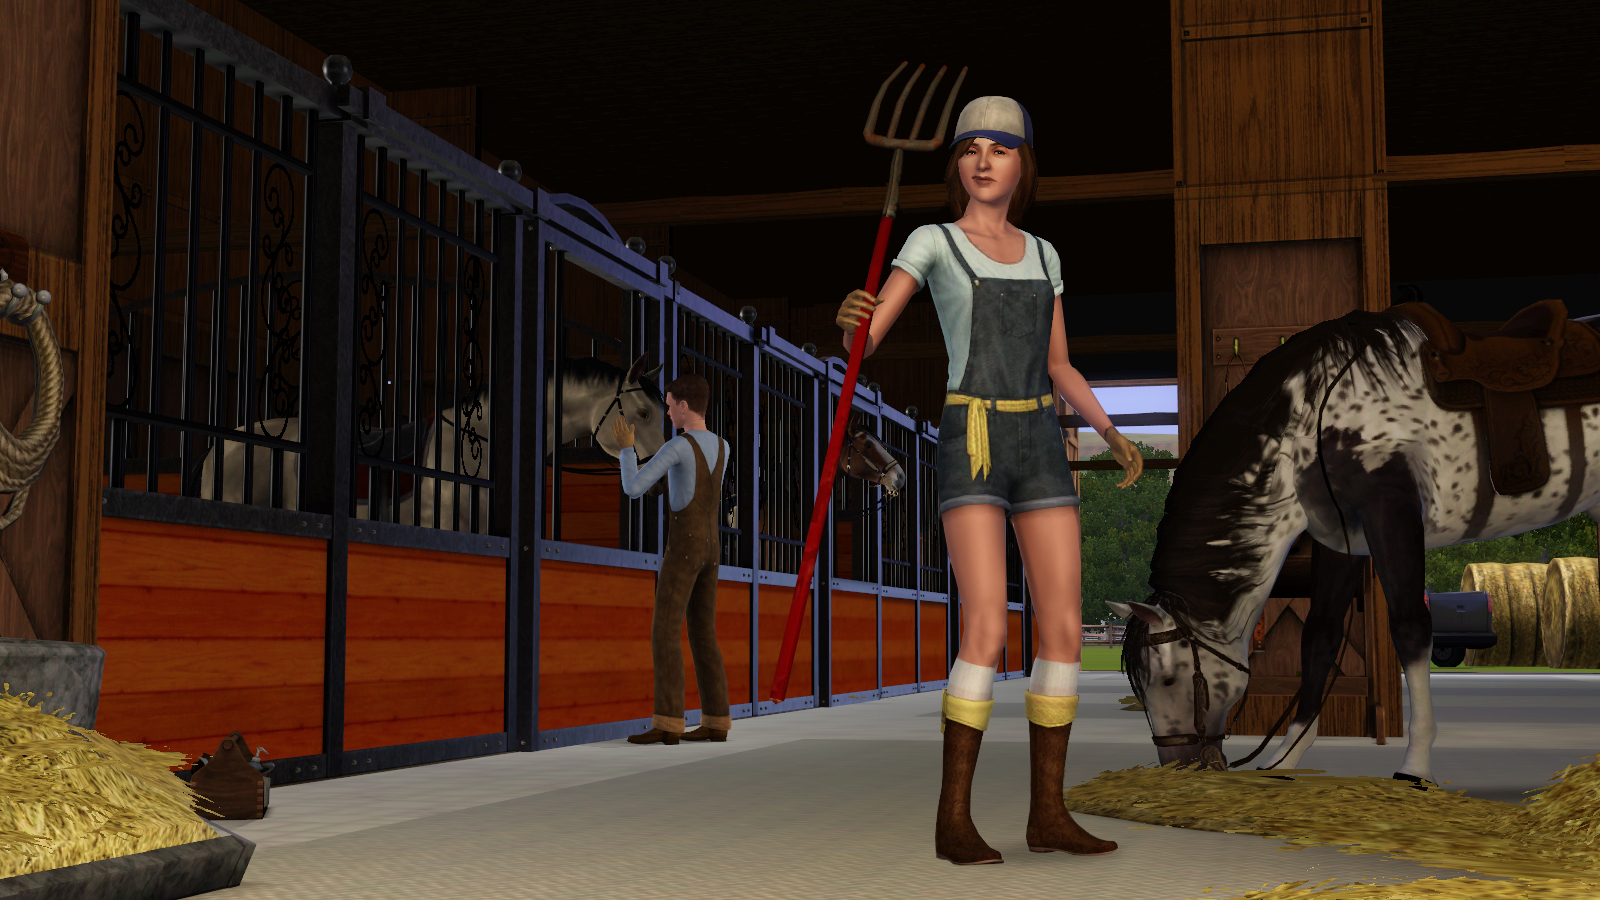 The sims 3 pets freeboot - f4